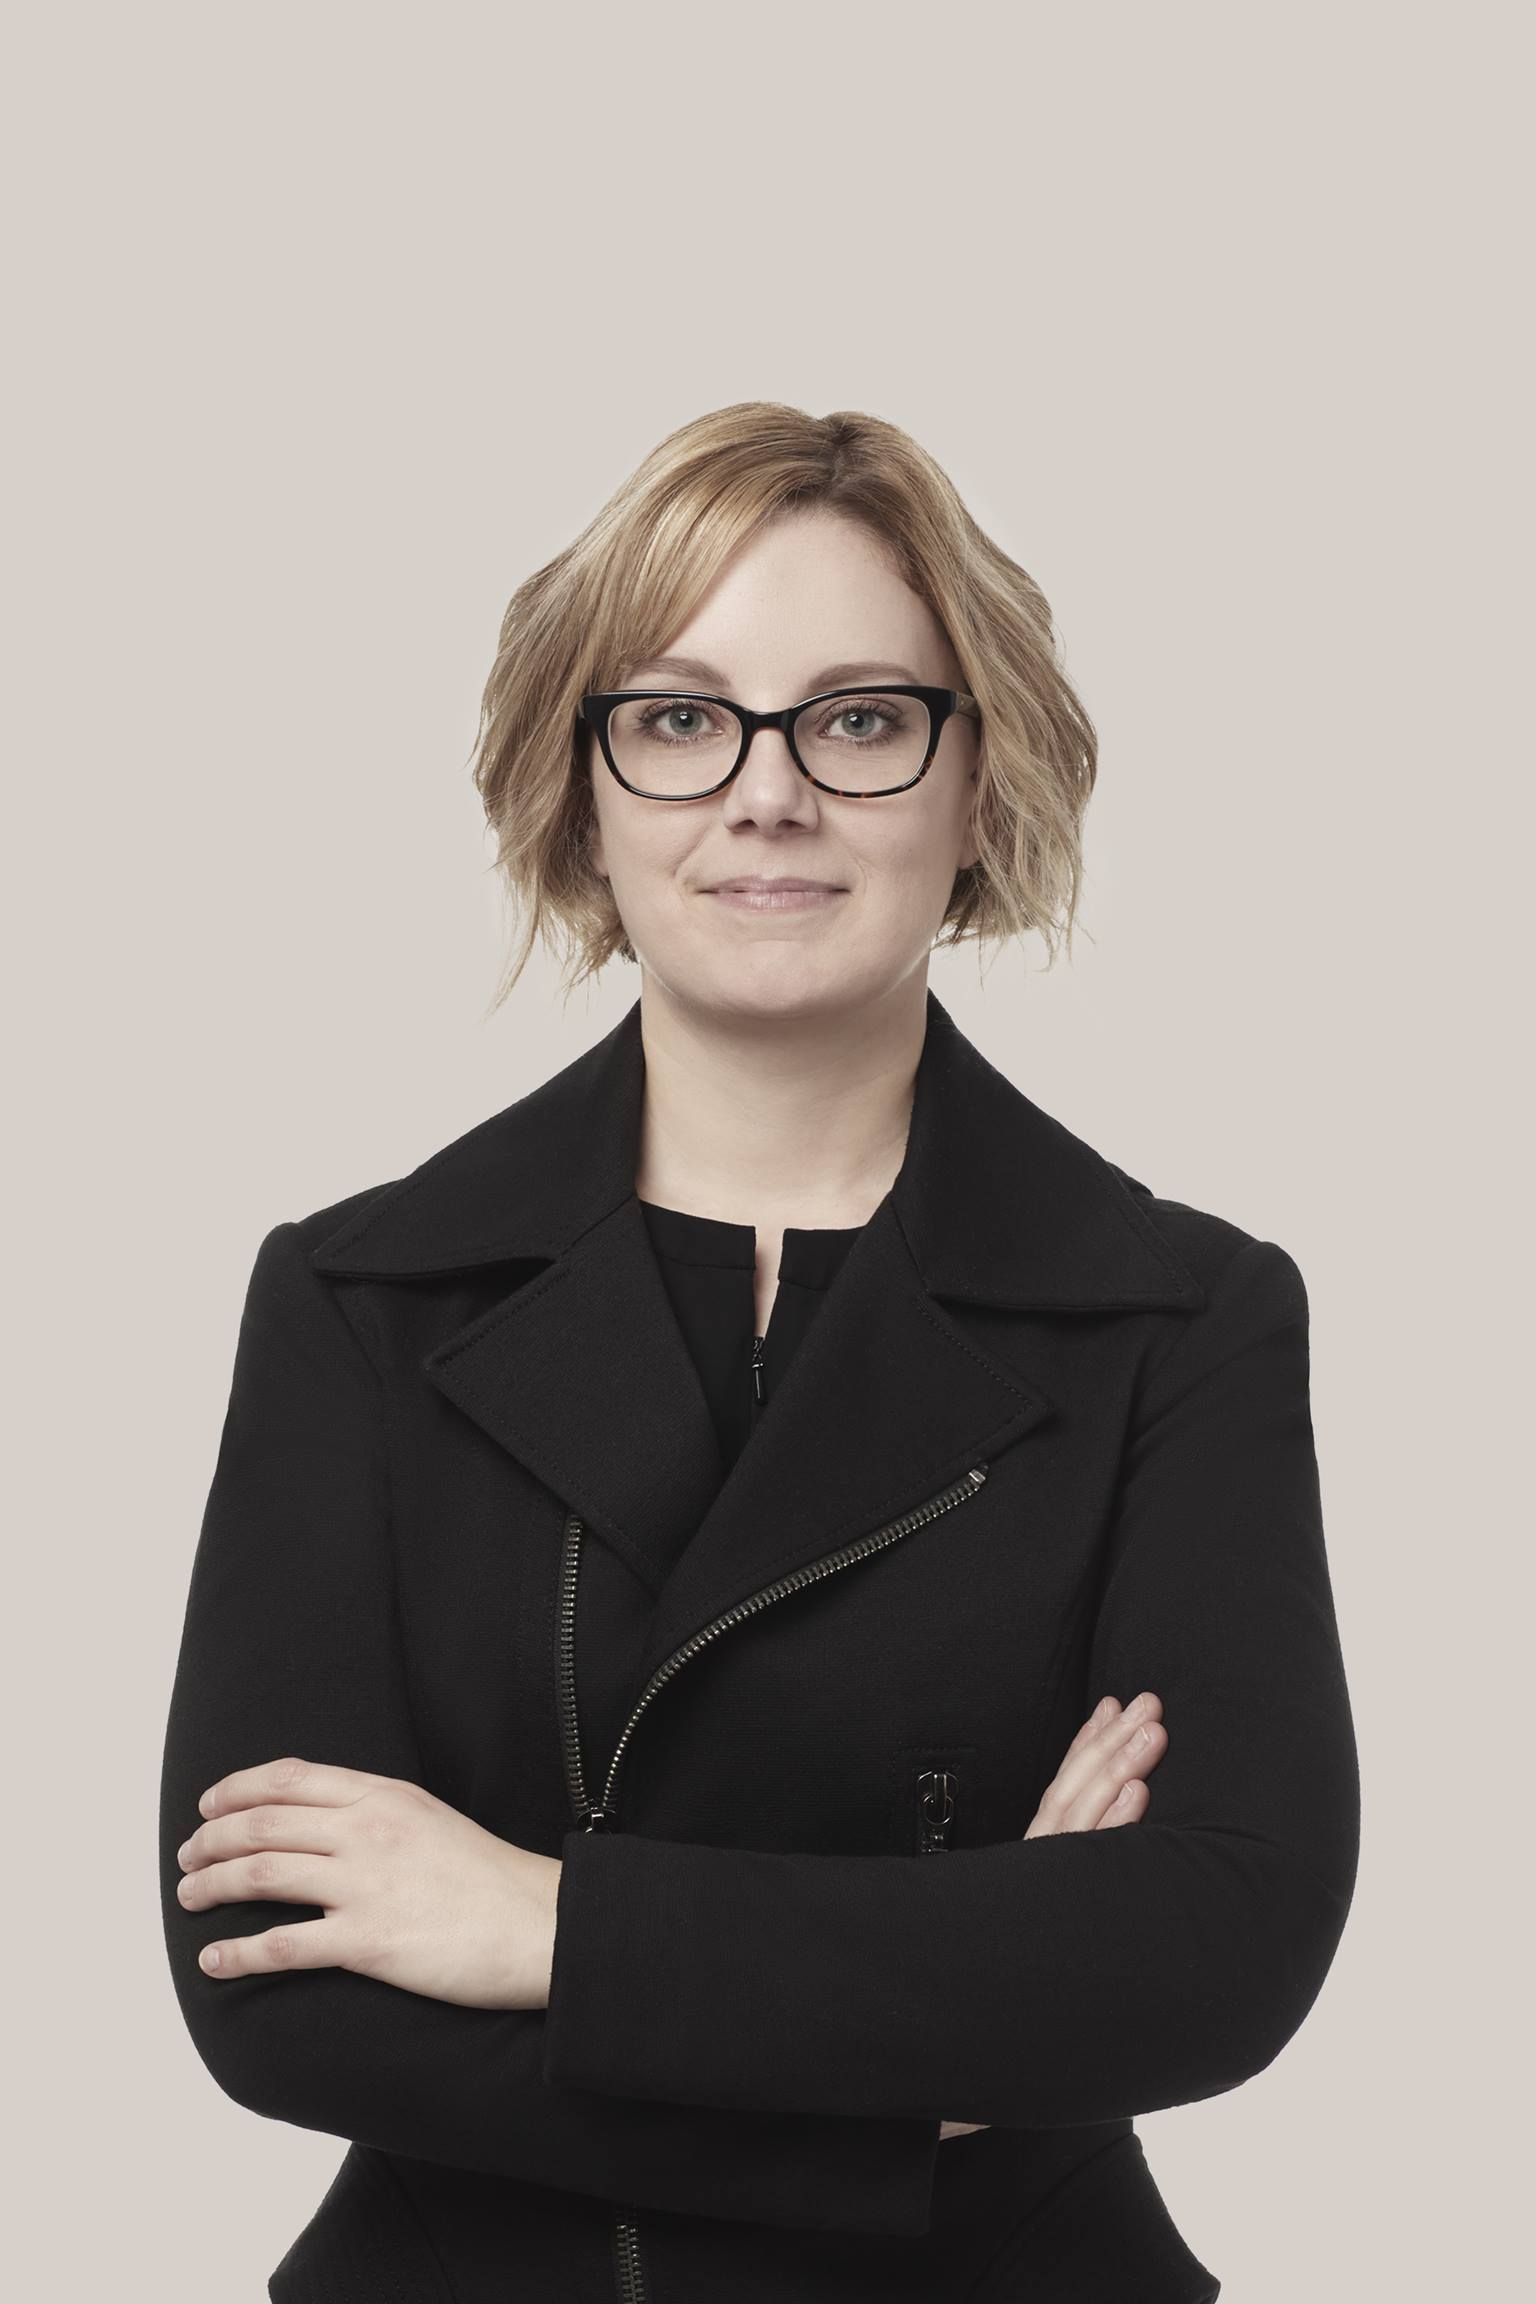 Cristel Chabot-Lapointe | Corporate/Commercial Lawyer in Montréal